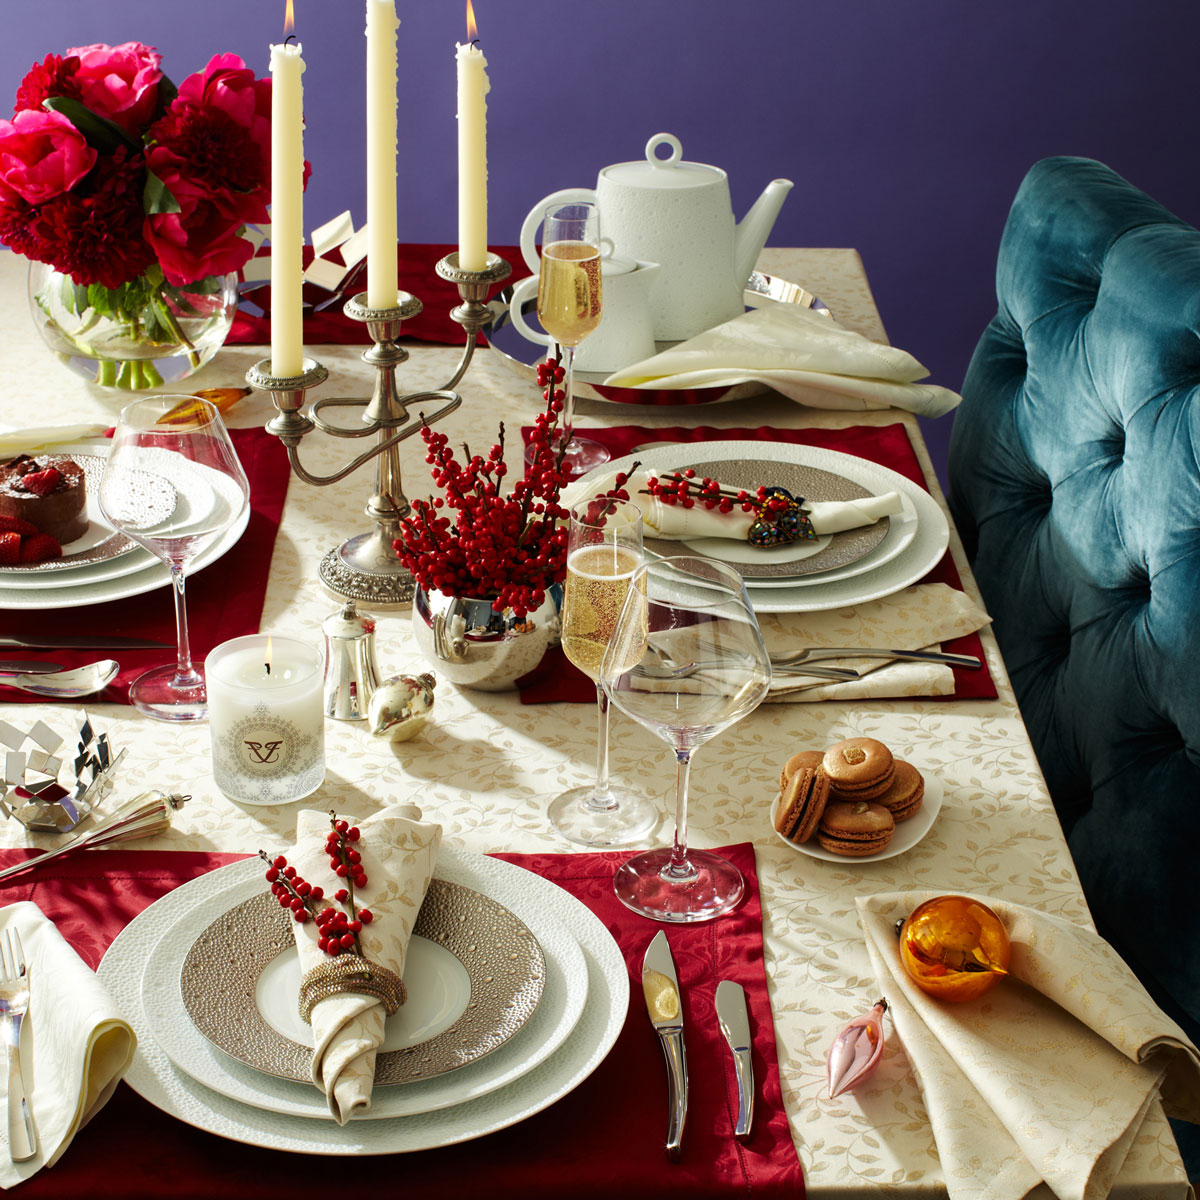 LANDING_HOLIDAY_TABLE_SETTING_147.jpg